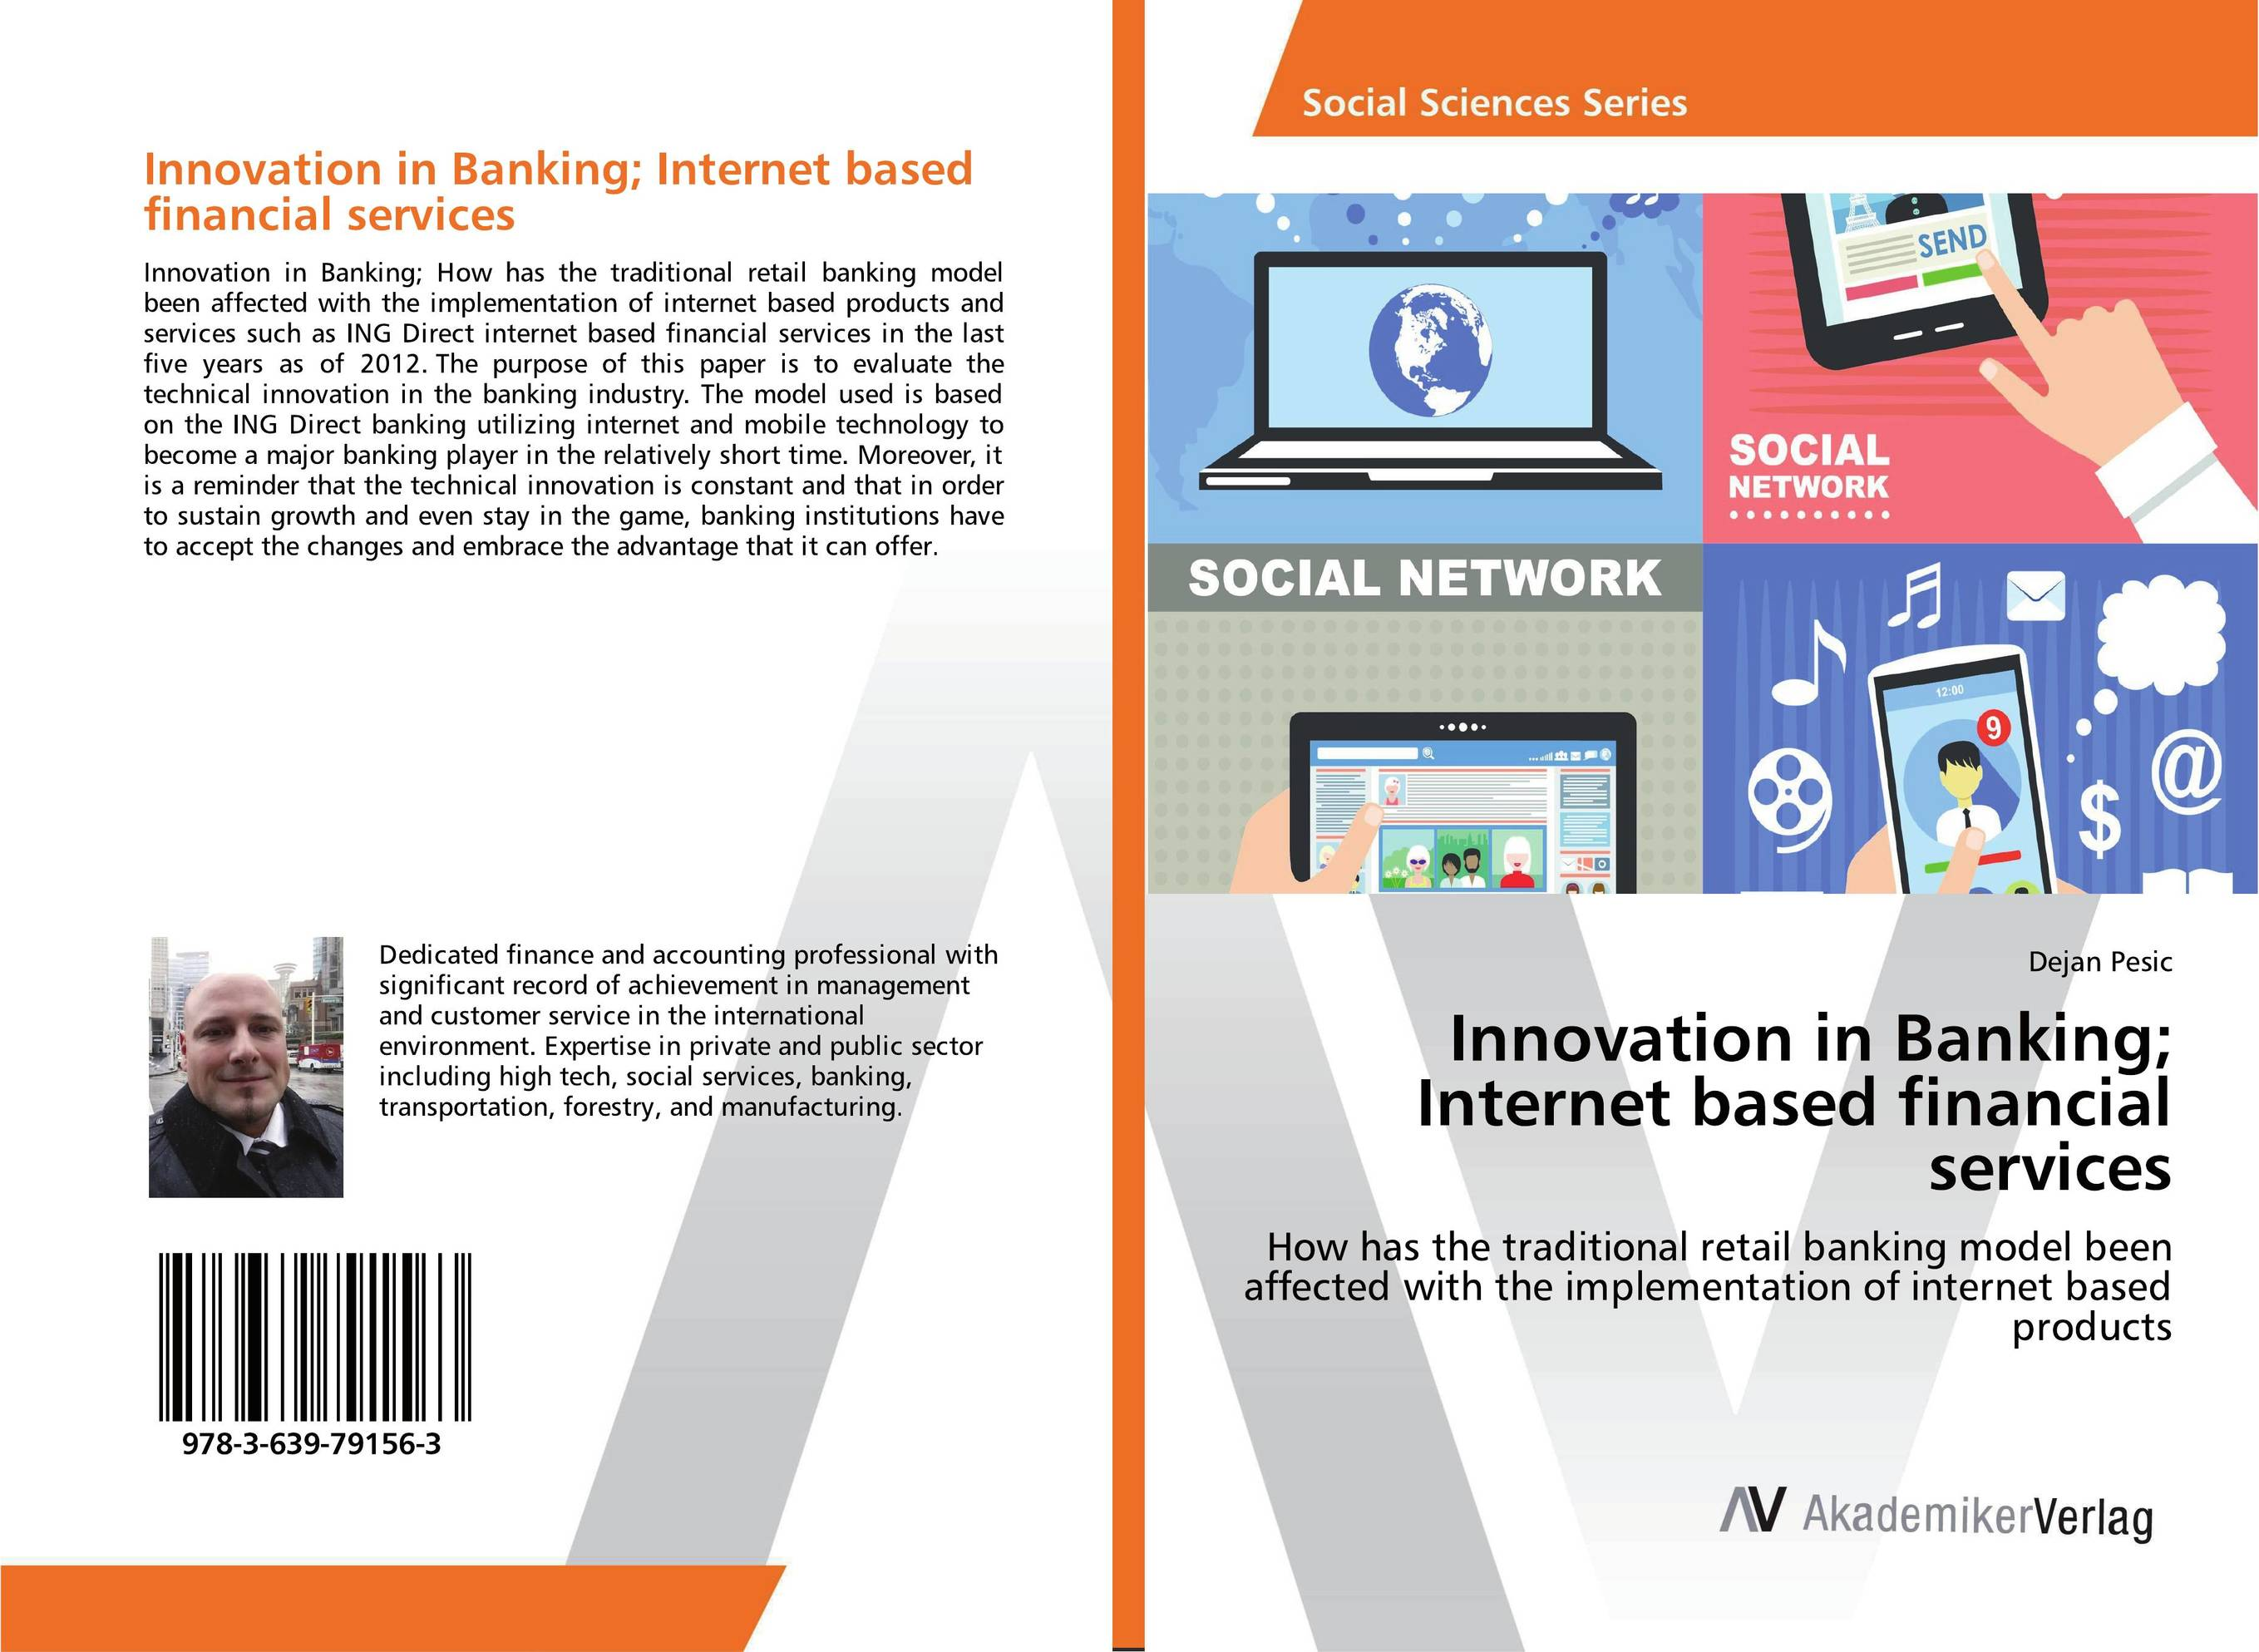 essay on benefits of technology in banking sector Free essay: today's business environment is very dynamic and undergoes rapid changes as a result of let me briefly review the current status of it in the financial sector more than most other industries, banks and the visible benefits of it in day-to-day banking in india are quite well known.